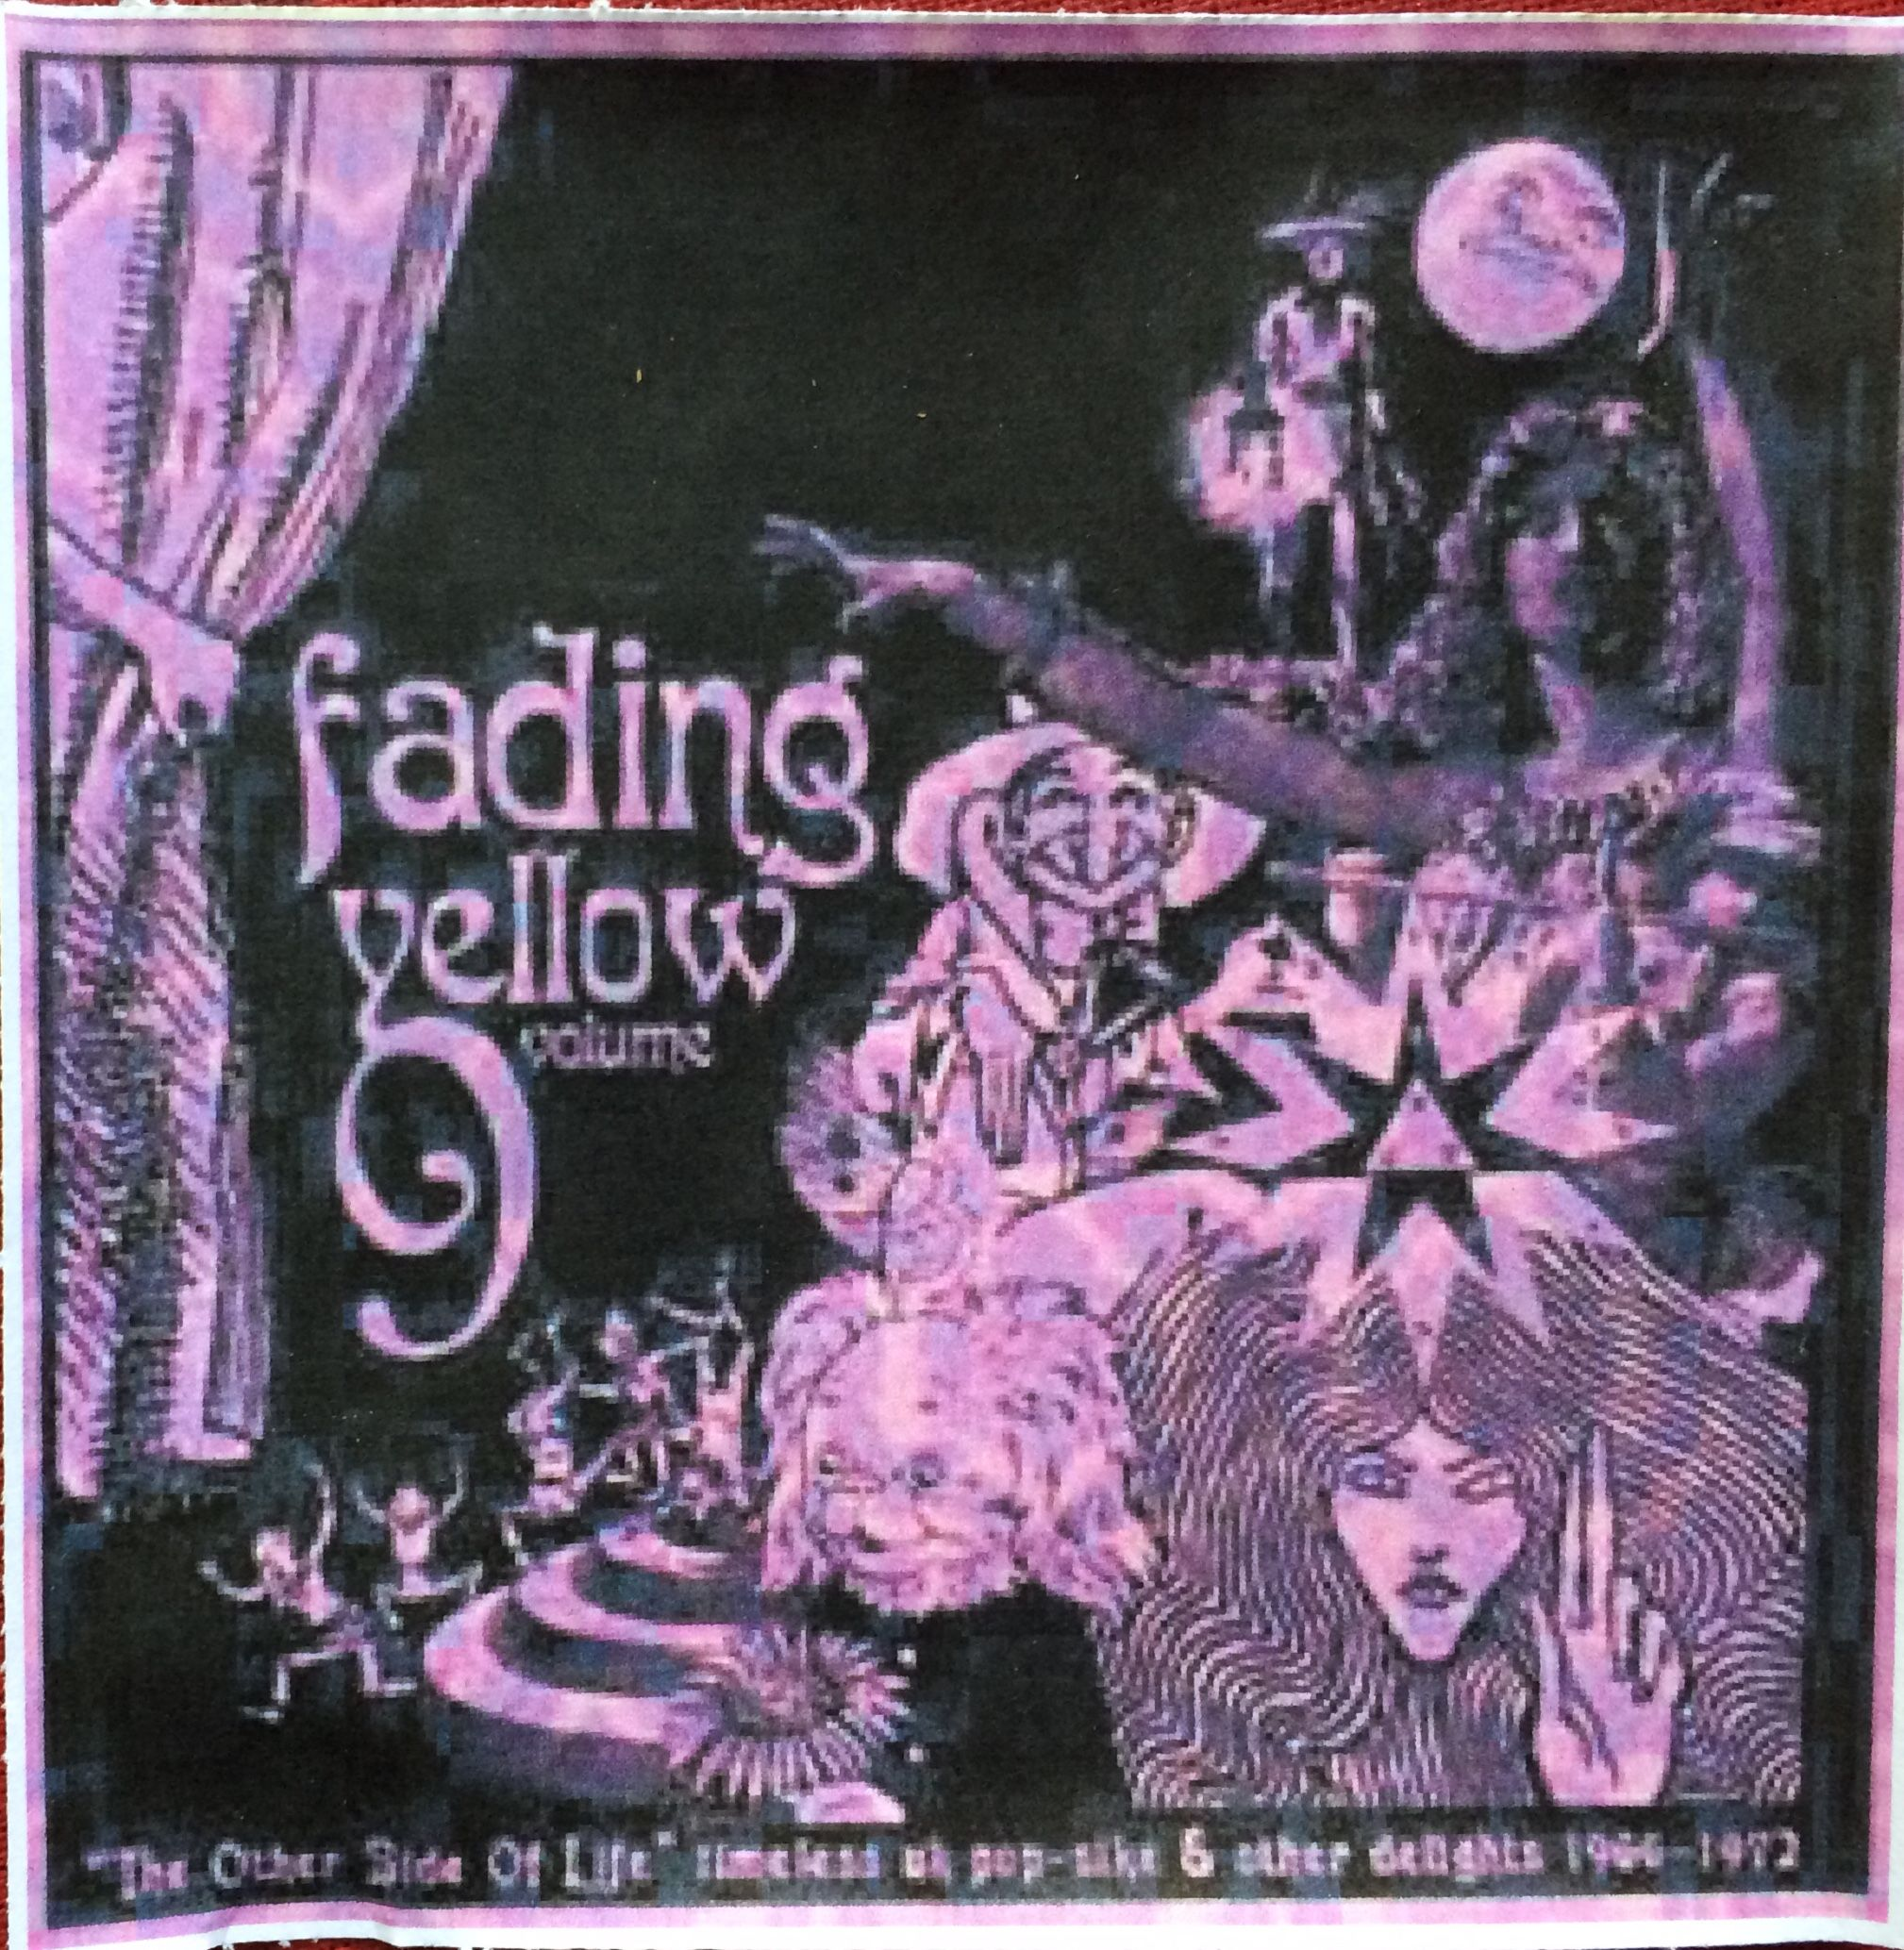 Various Artists: Fading yellow 9 CD (Flower machine records)